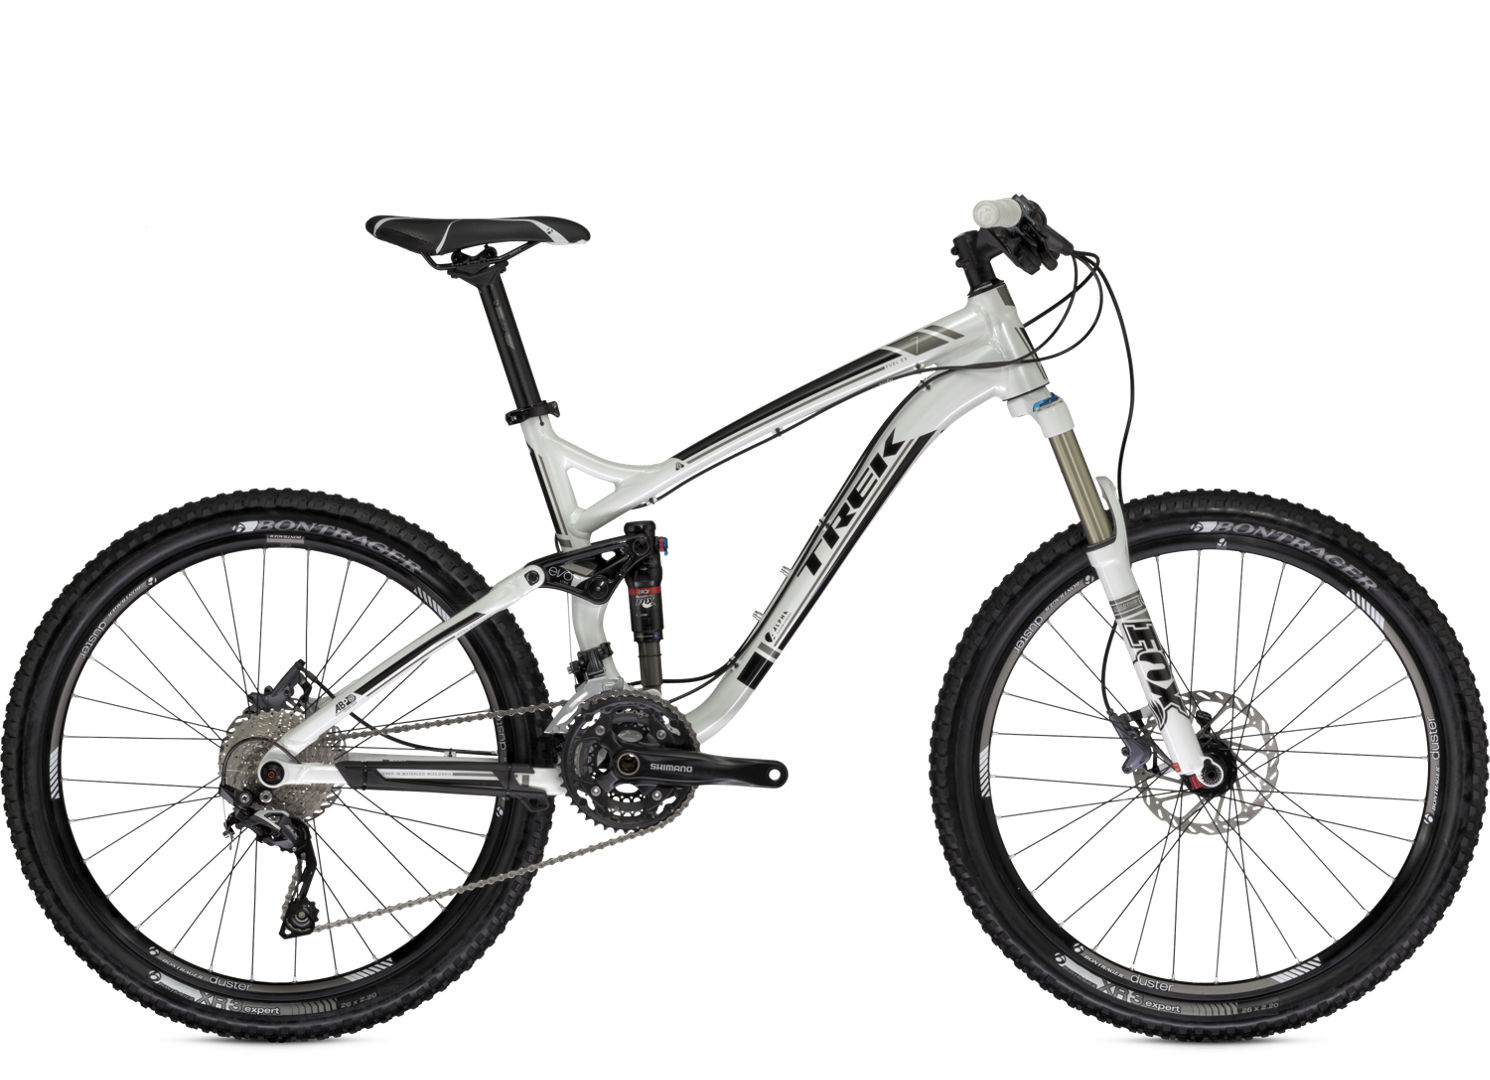 2013 Fuel EX 7 - Bike Archive - Trek Bicycle